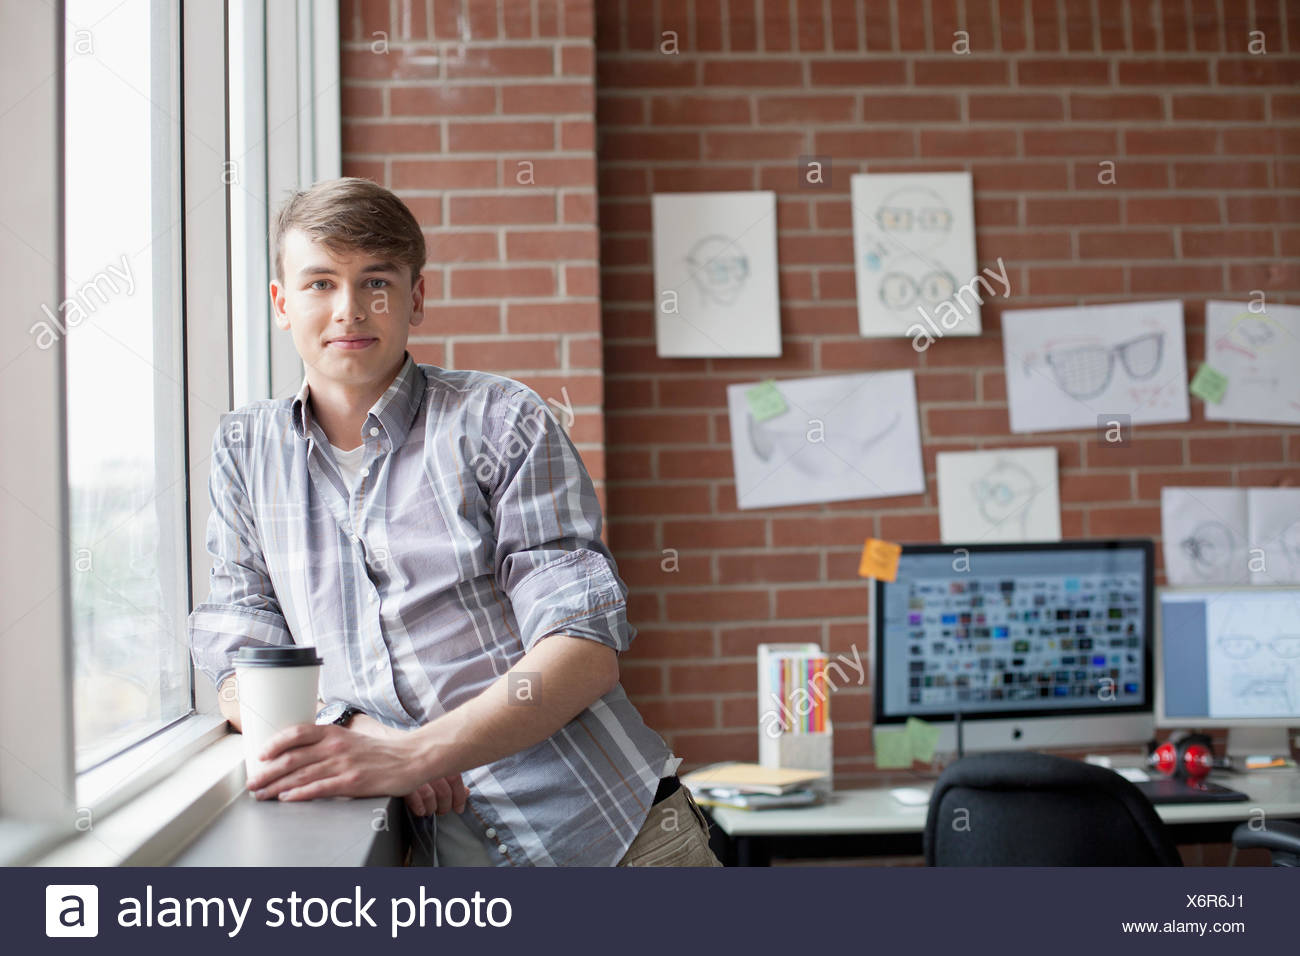 young, male industrial designer in studio - Stock Image